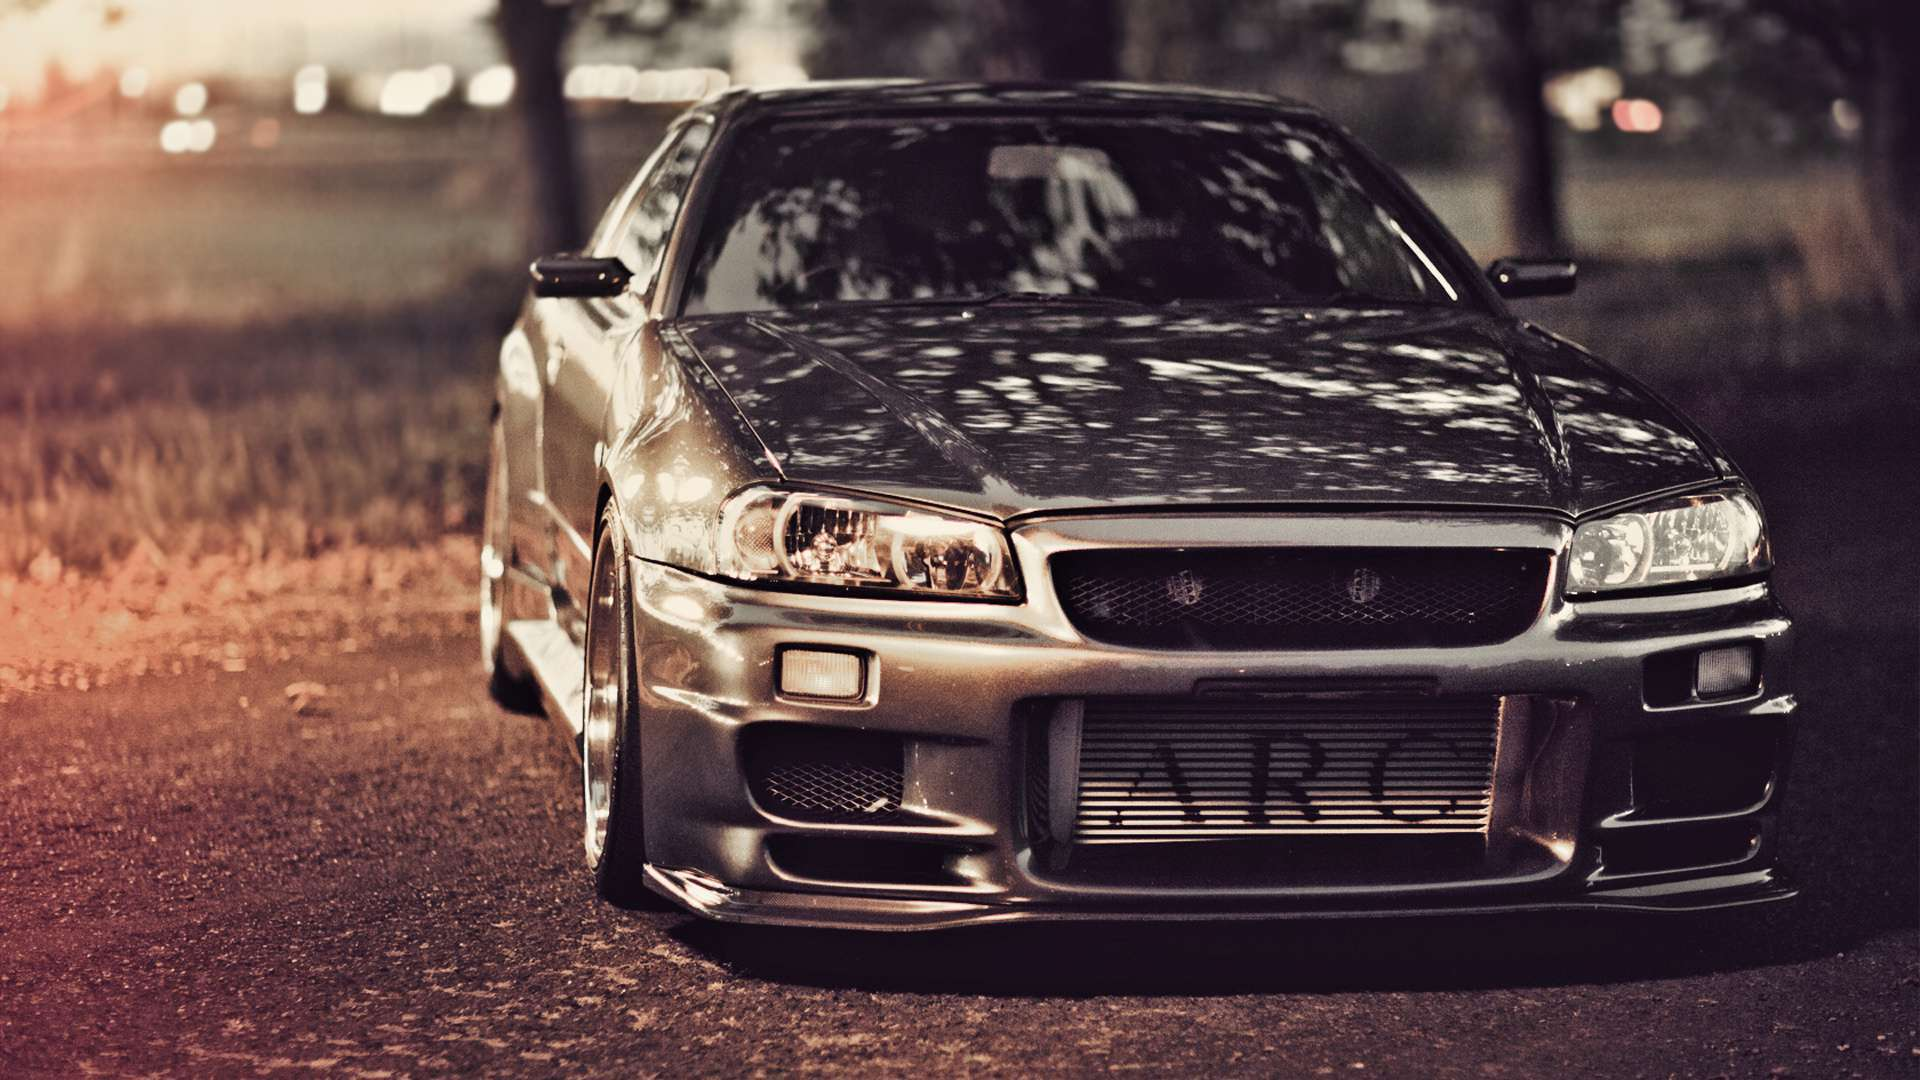 View Of Nissan Skyline Gt R R34 Hd Wallpapers : Hd Car Wallpapers